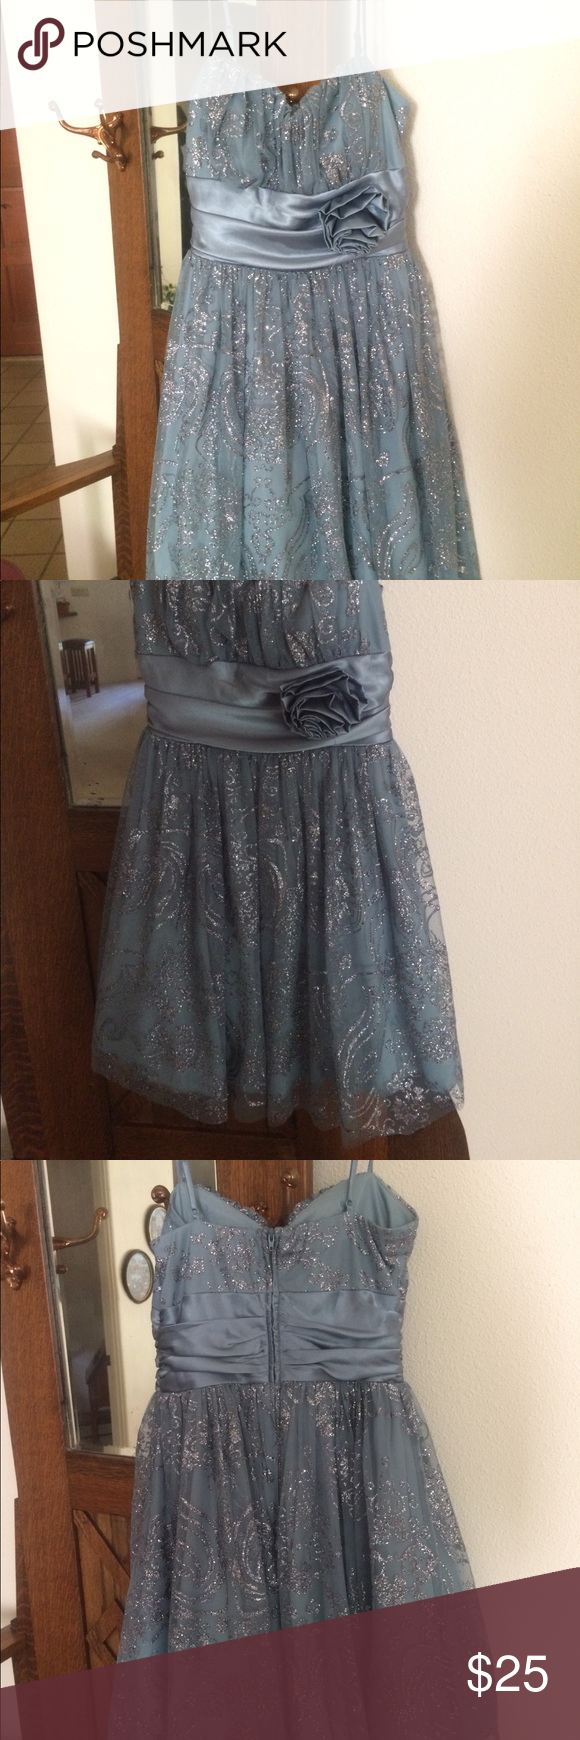 Steel blue and silver dress excellent condition only worn once